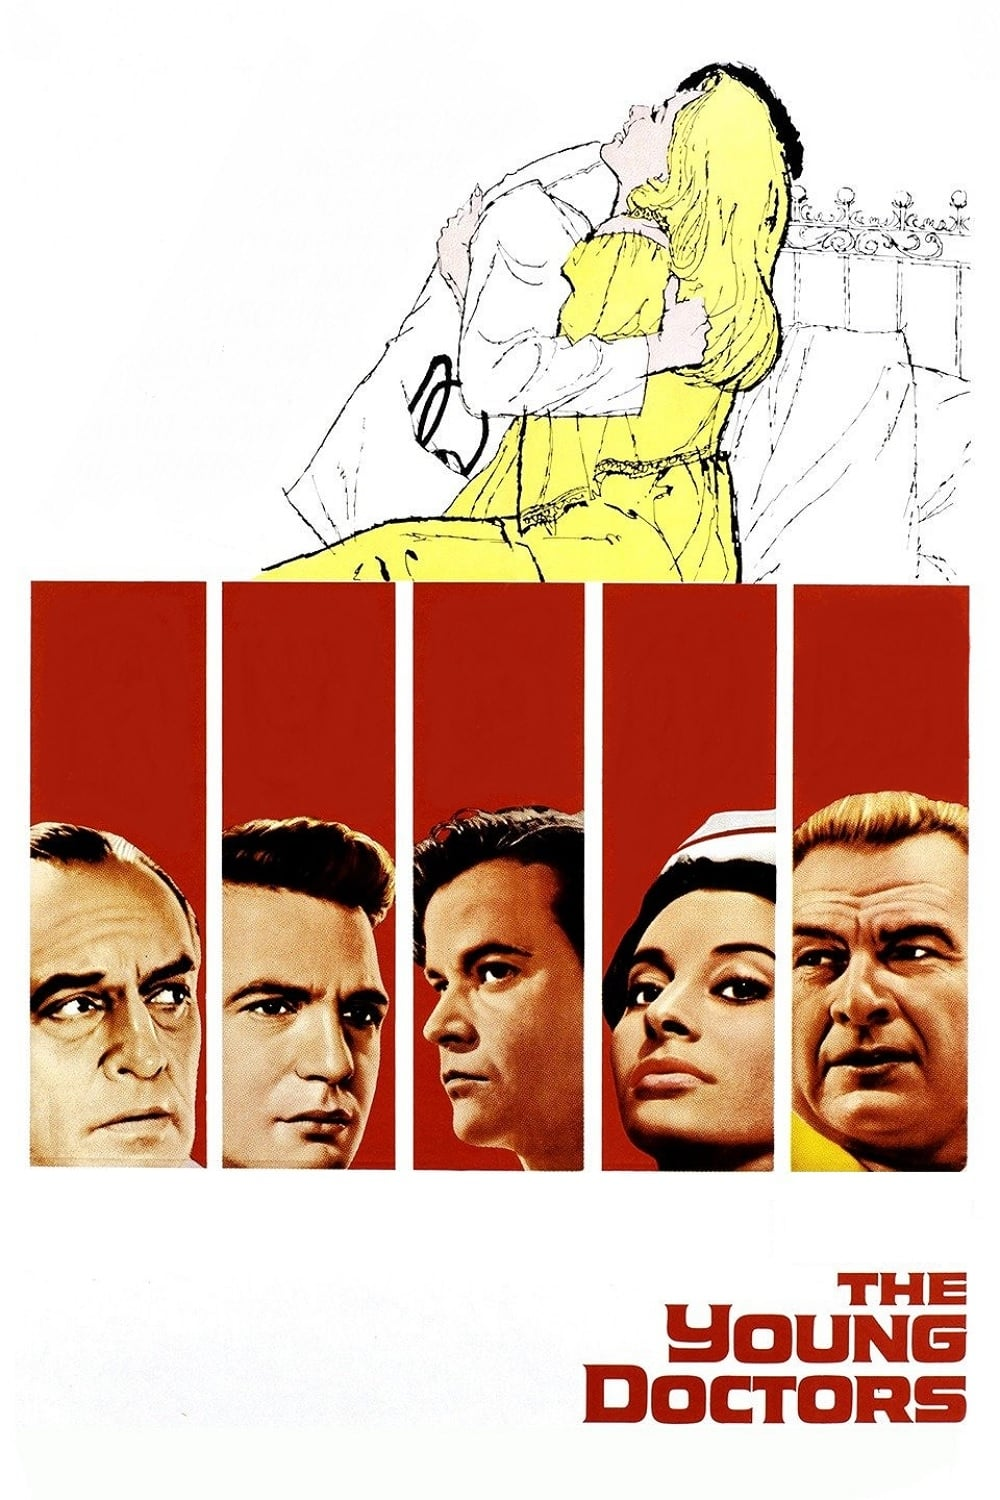 The Young Doctors (1961)